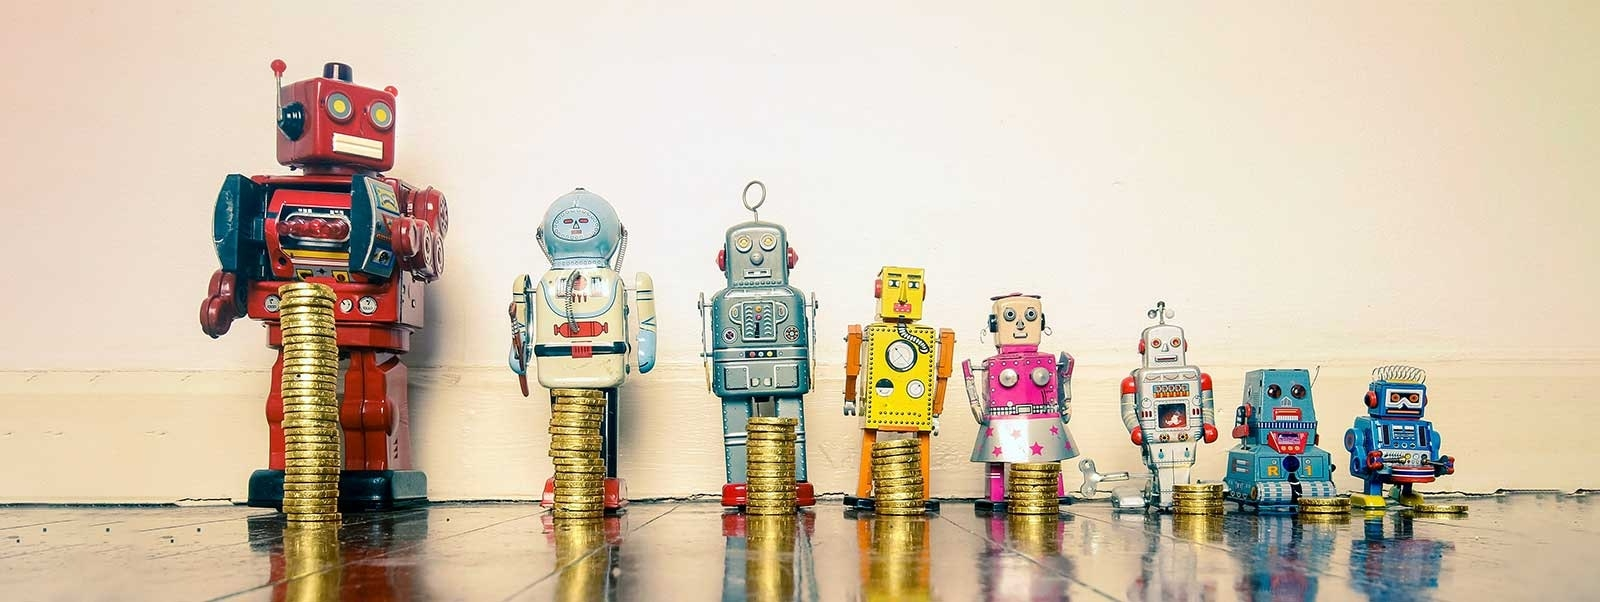 how banks should prepare for robots going rogue